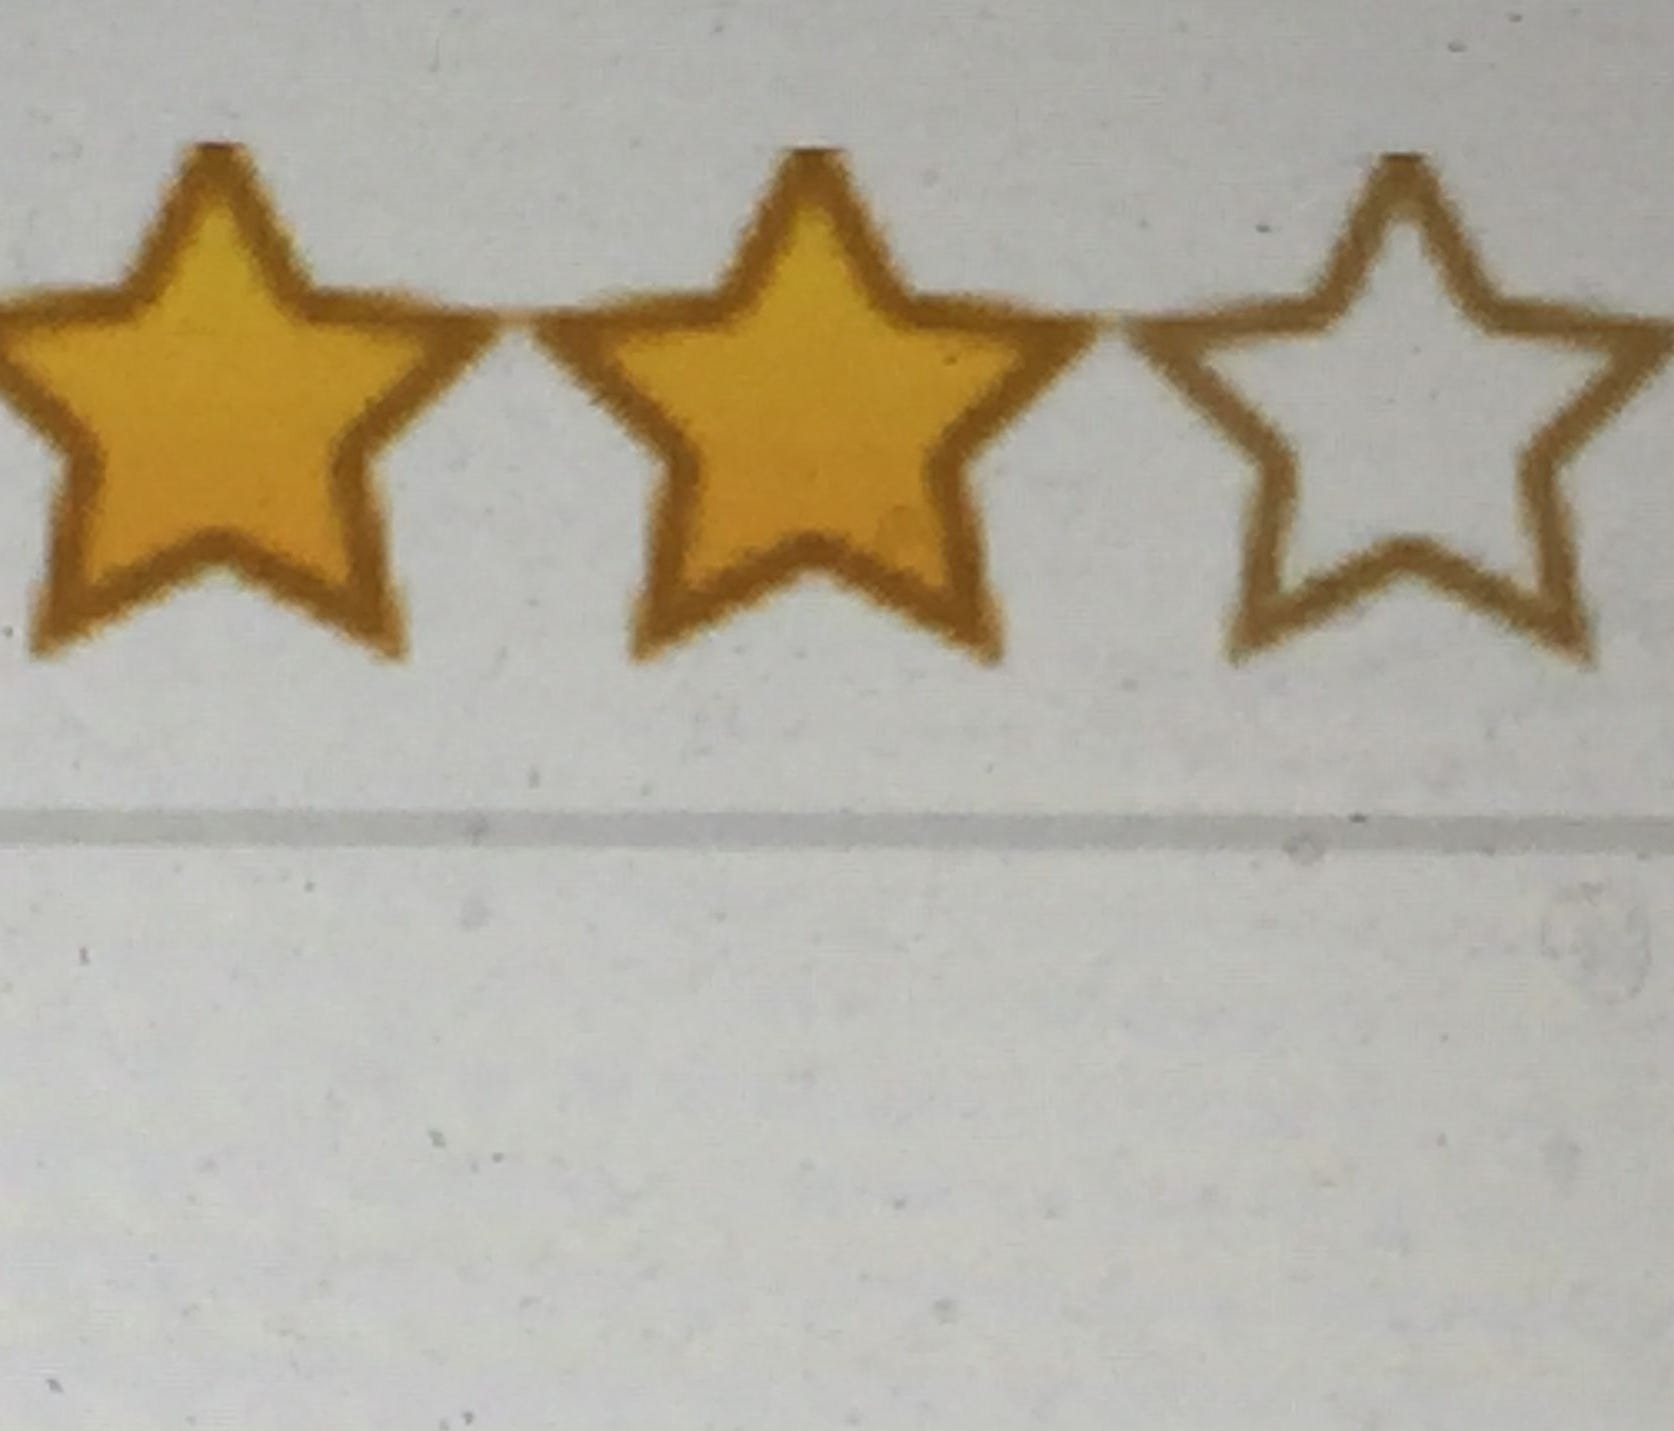 Rating stars for a product on Amazon. Research shows that a 5-star rating isn't actually the best, as if customers don't see at least a few negative reviews they think the system's been gamed.